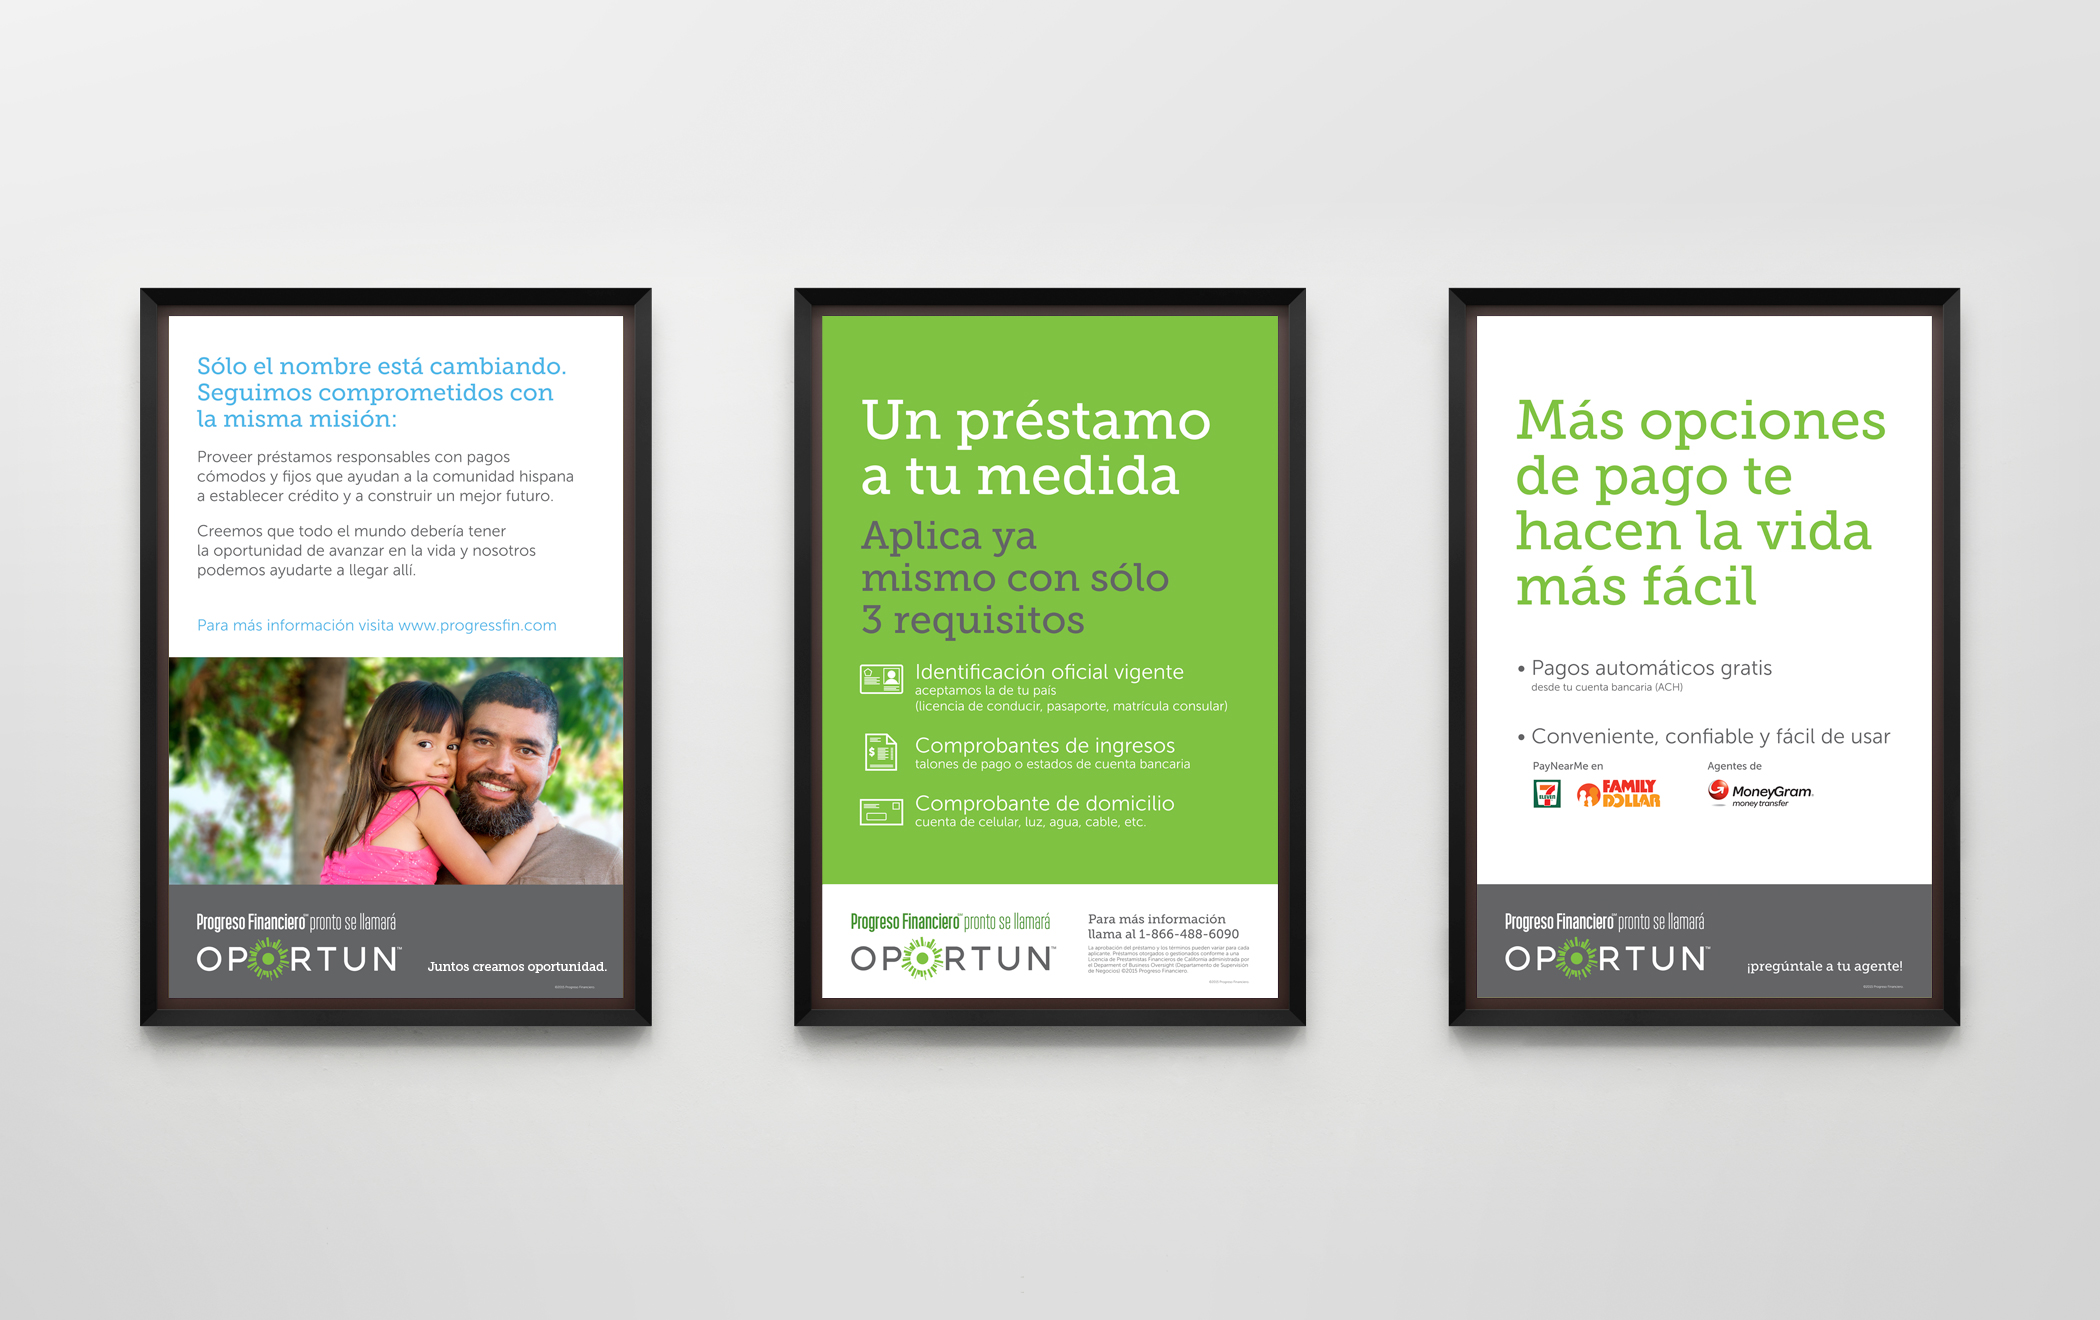 Three framed Oportun retail branch posters with information and brand slogans in Spanish.